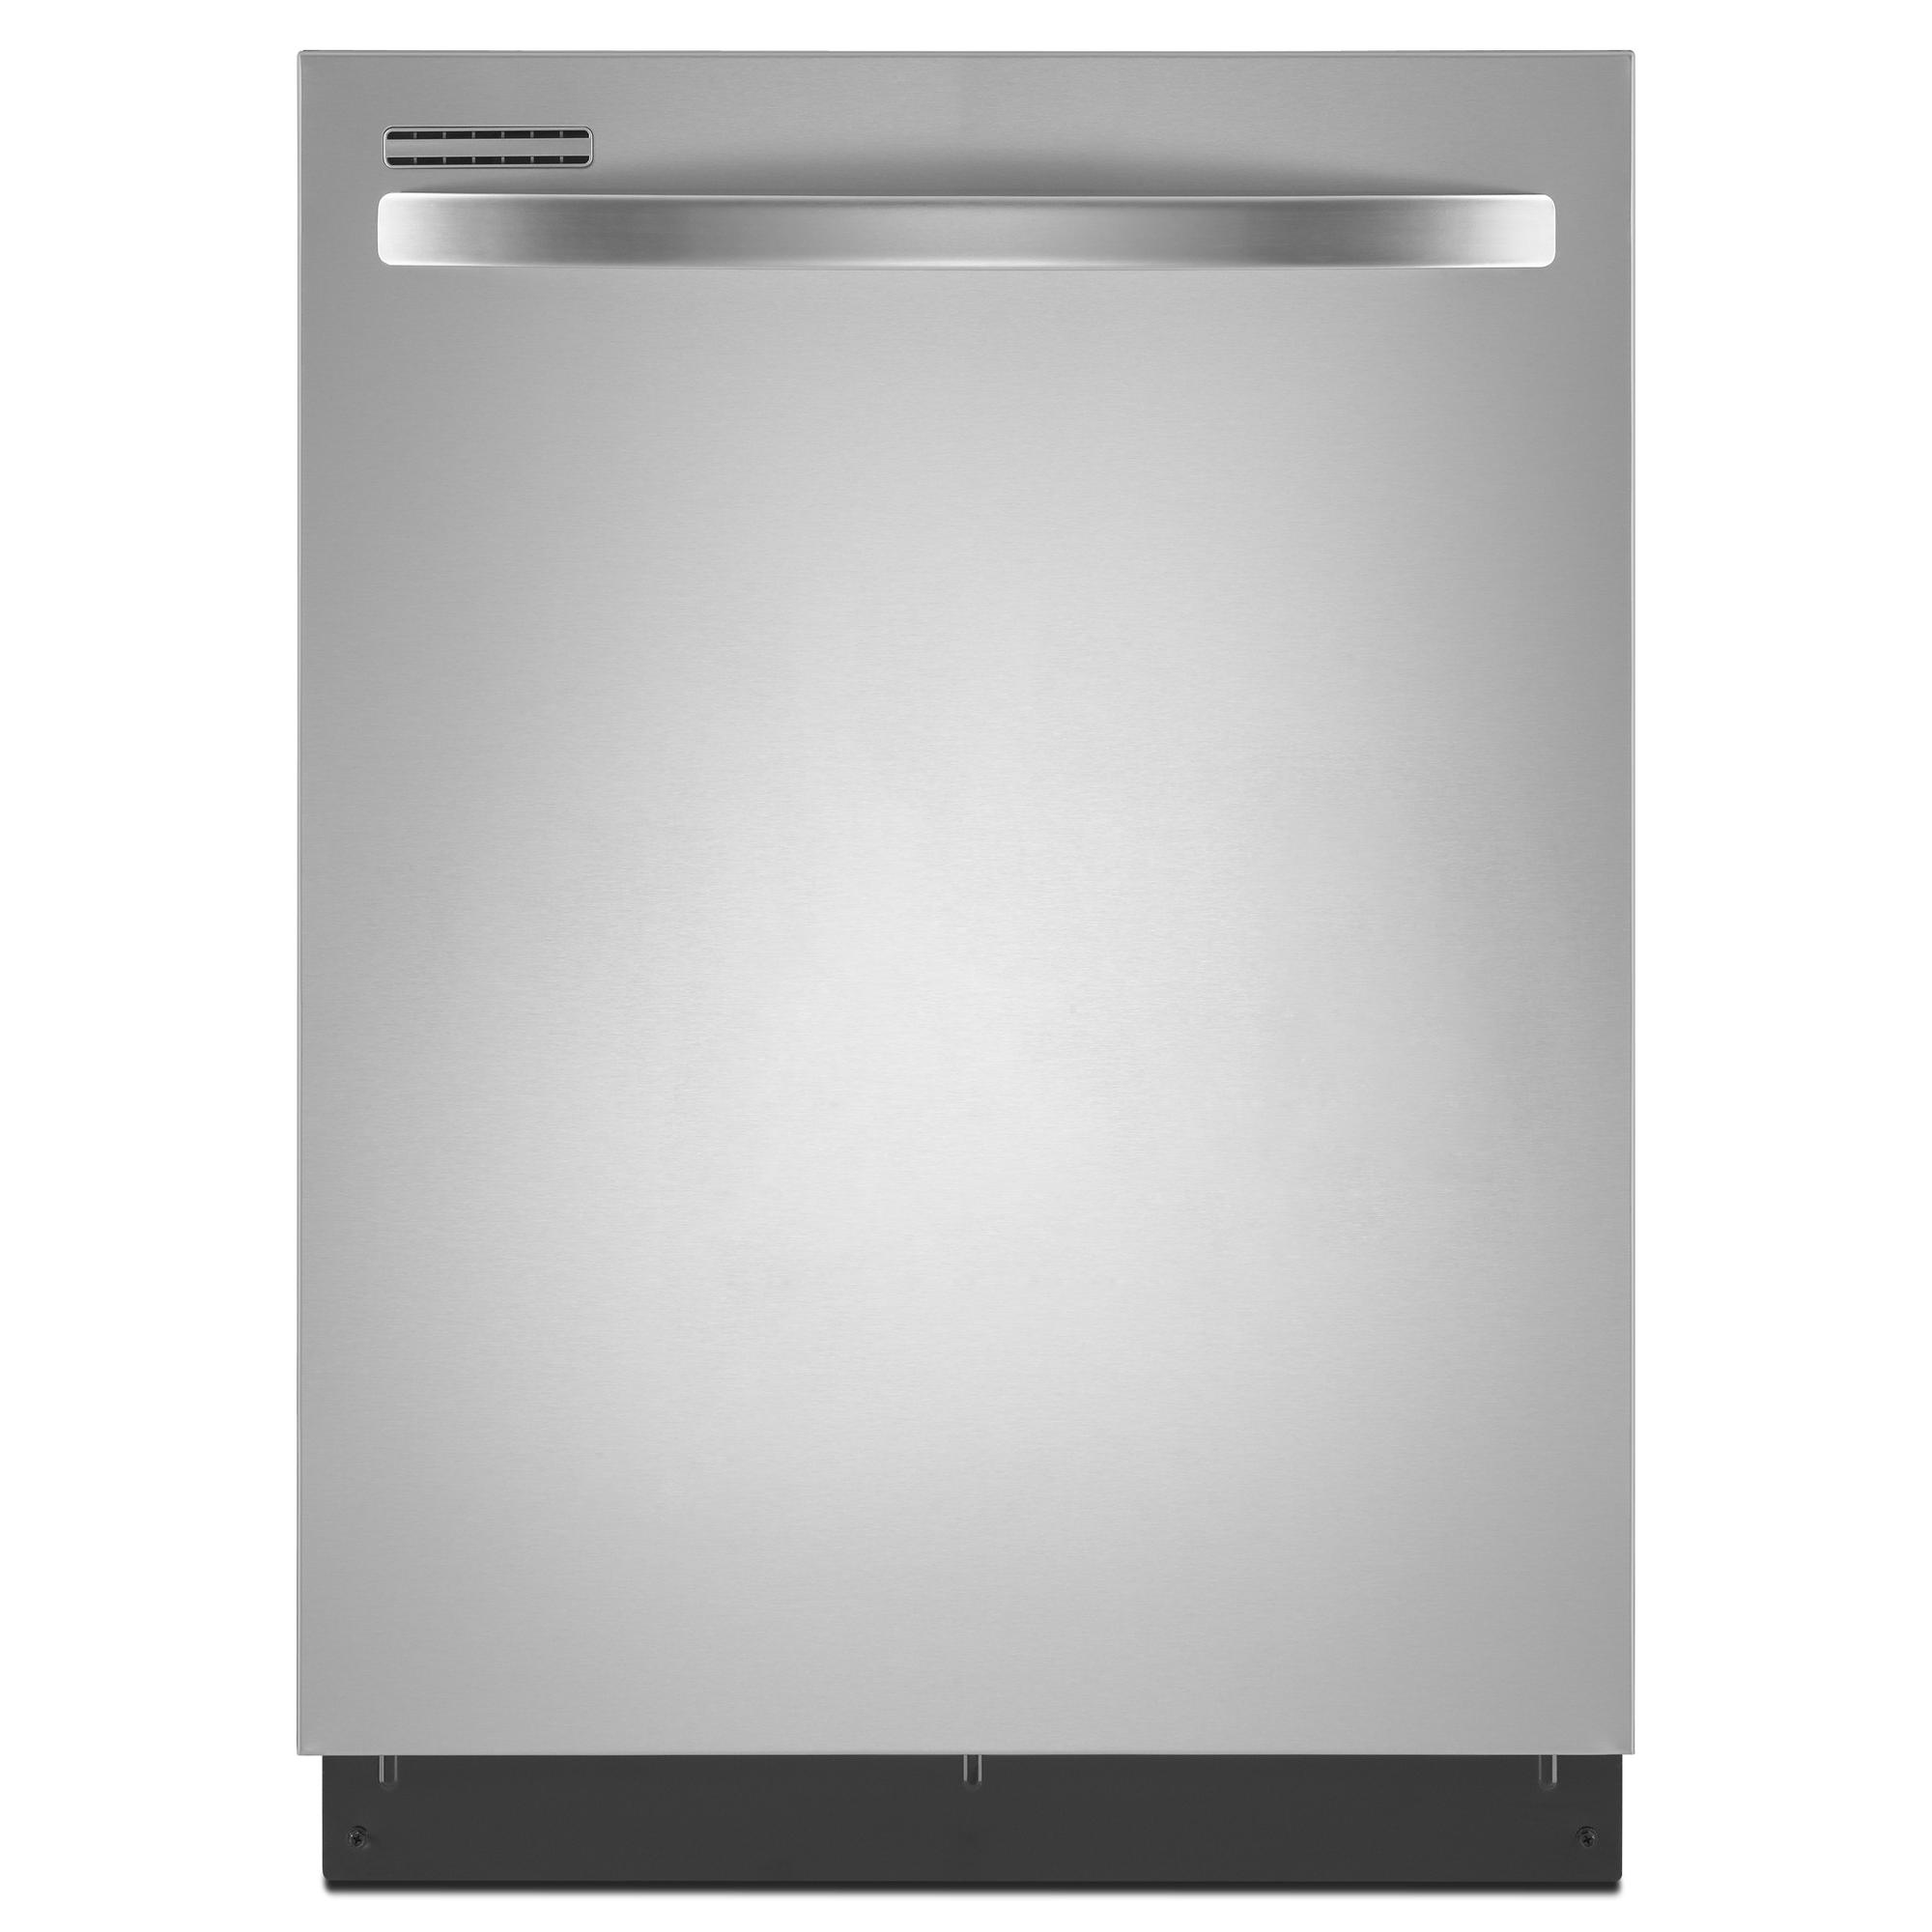 Kenmore 12413 24 Built-In Dishwasher w/ SmartWash® HE Cycle - Stainless Steel